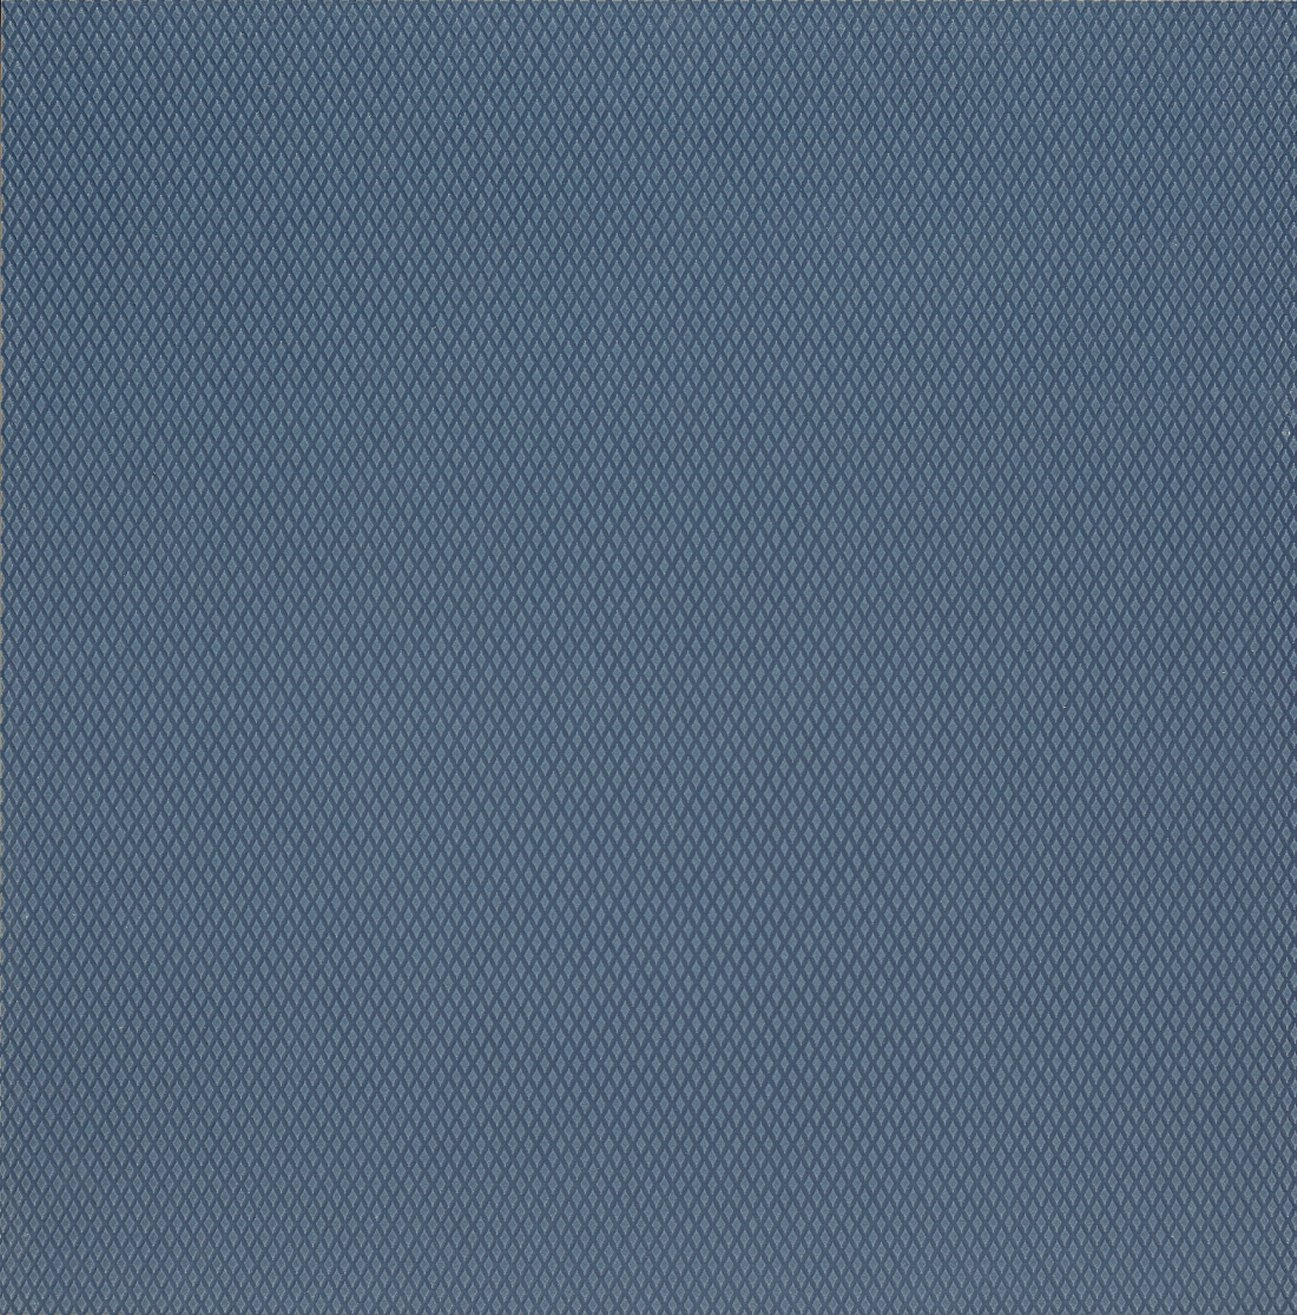 Mutina_Rombini Carre Uni Blue 40x40rett. 1X choice €.40sqm